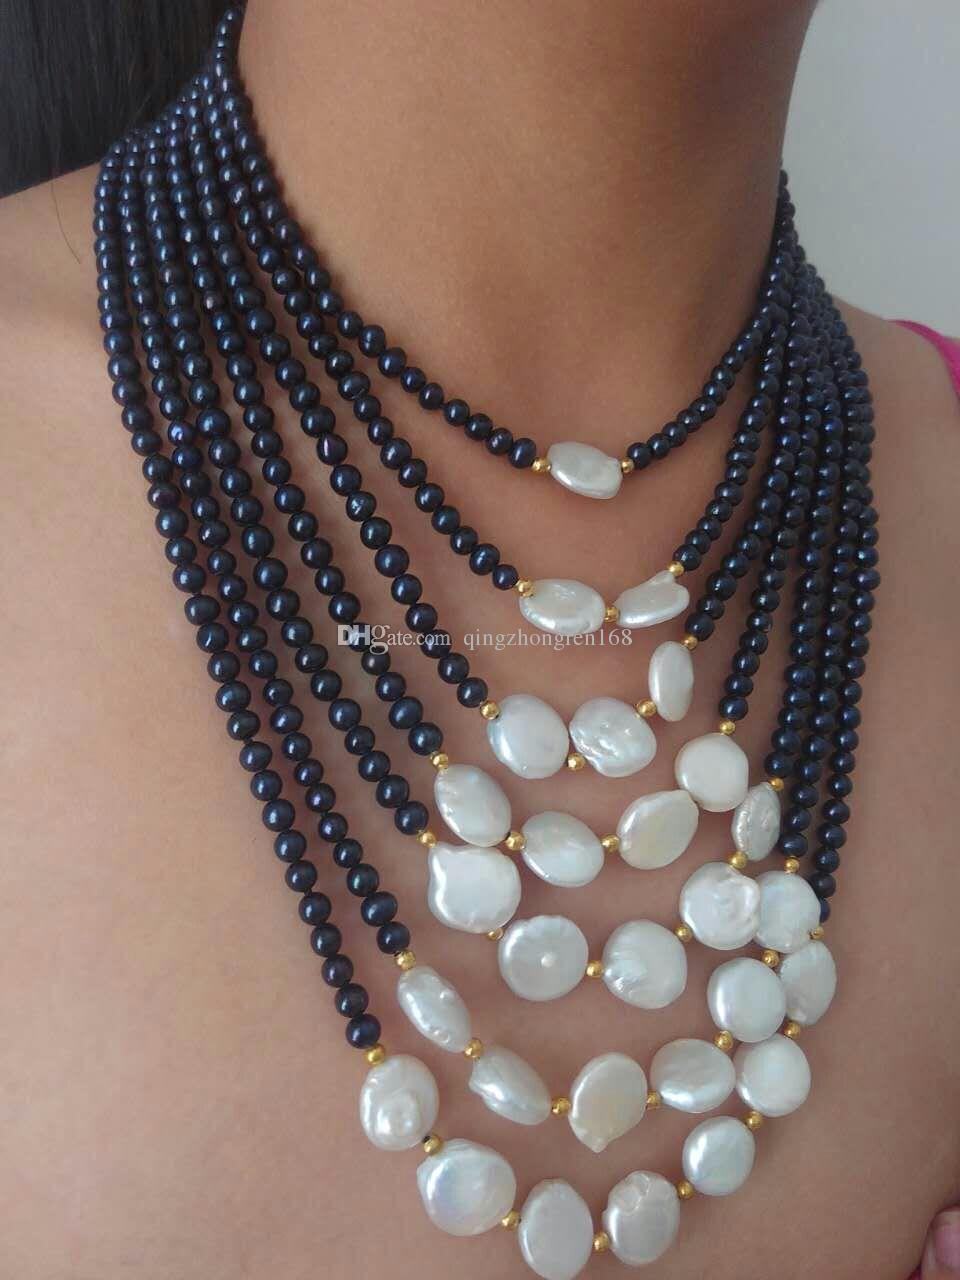 kind c of pearls i like black